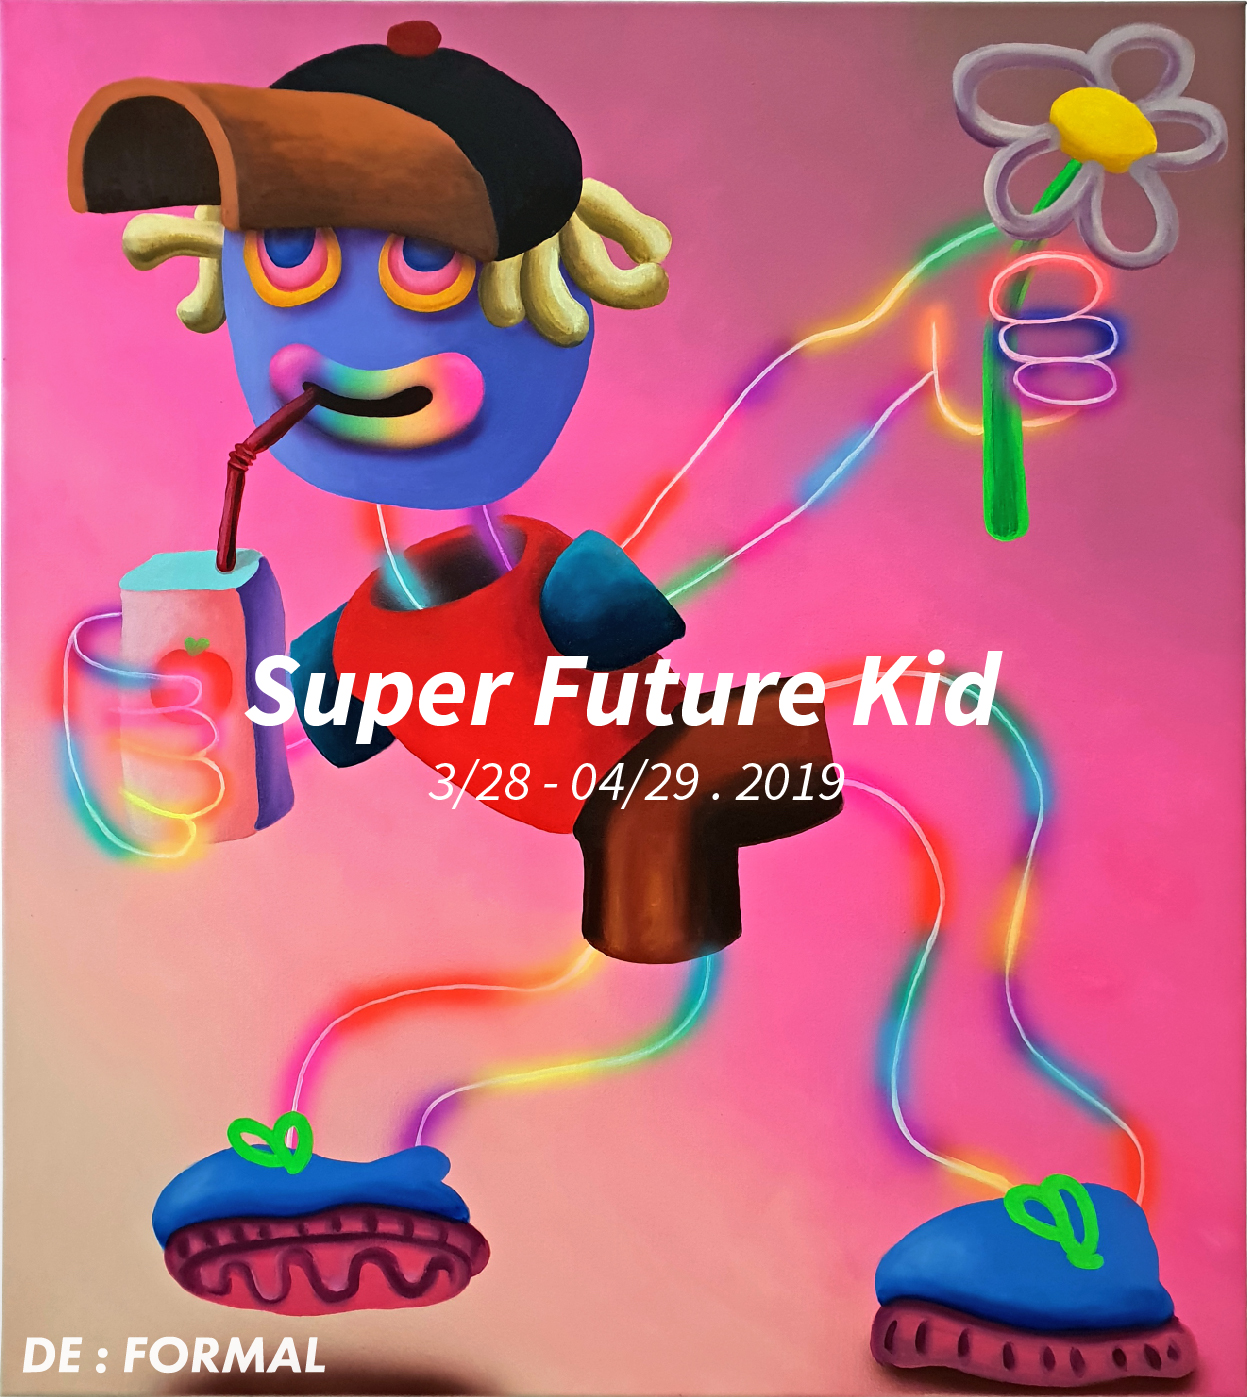 Super Future Kid Poster-01.jpg